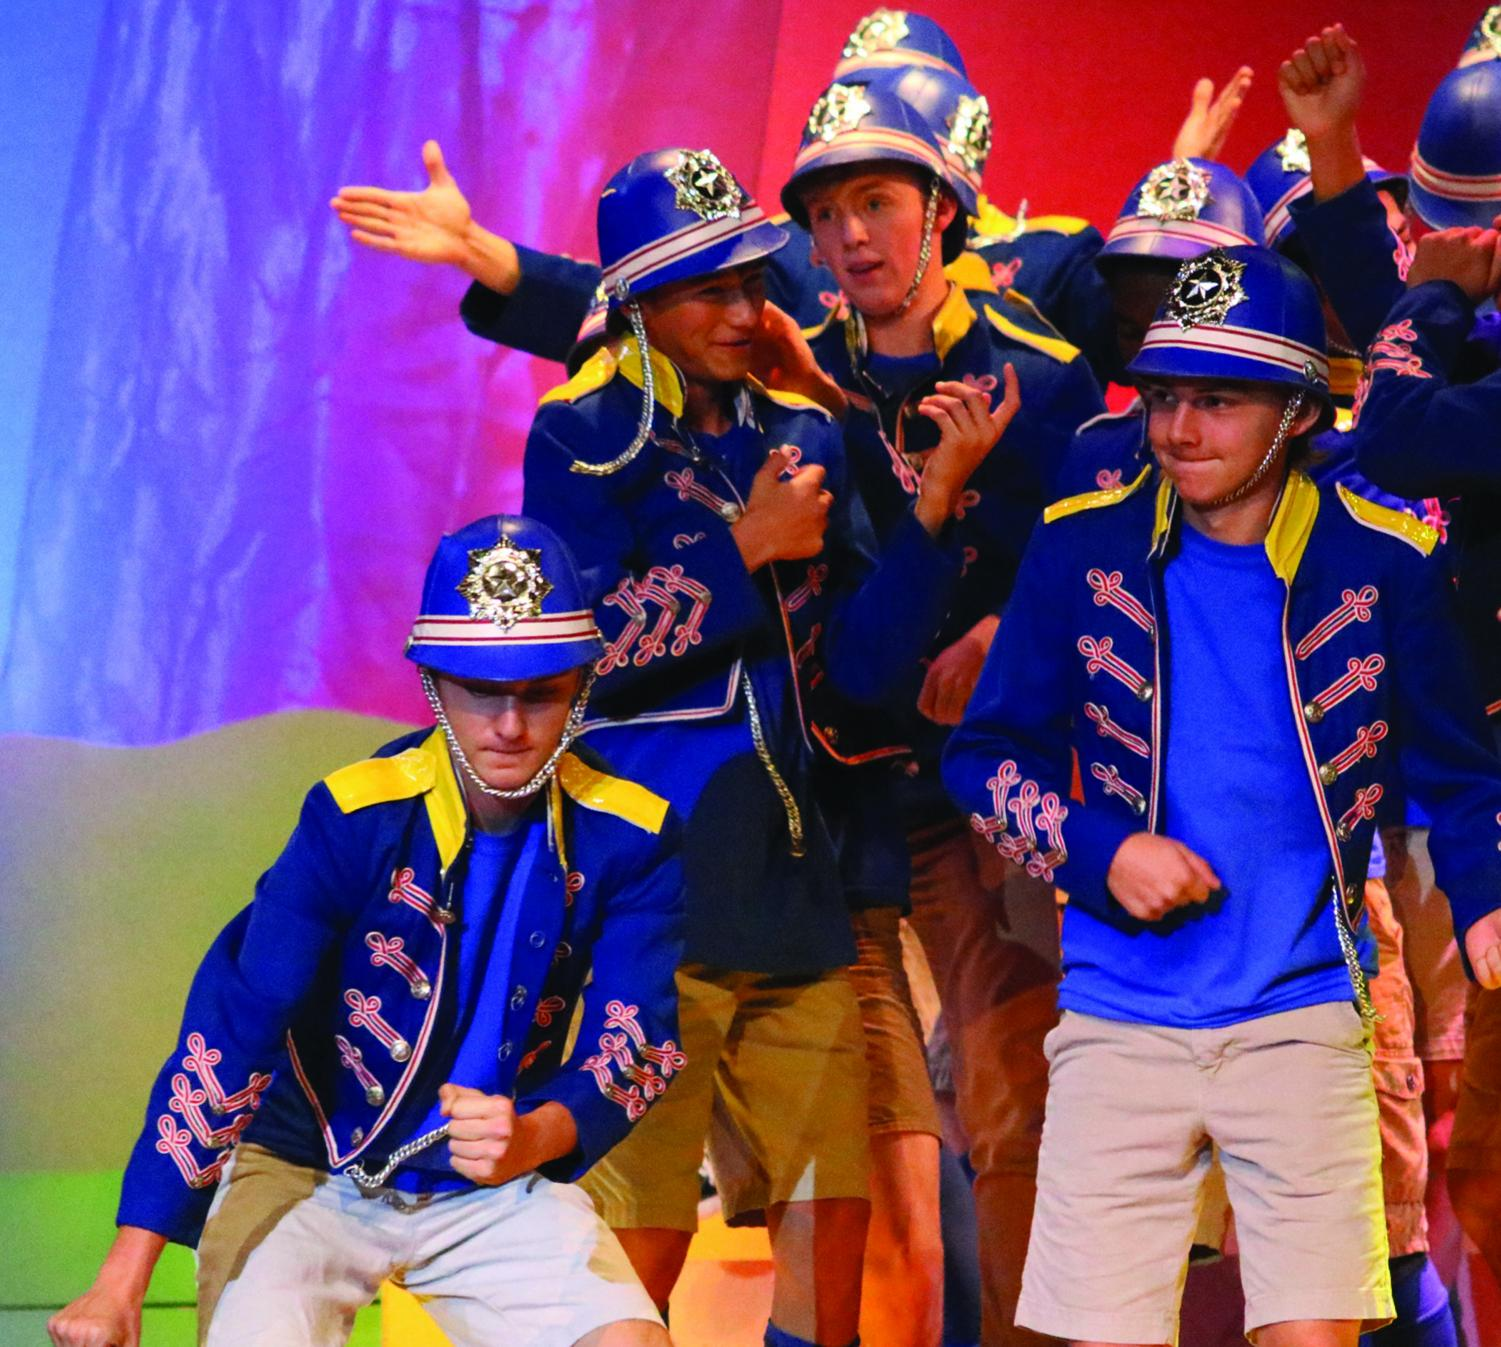 The boy scouts in Seussical sing and dance